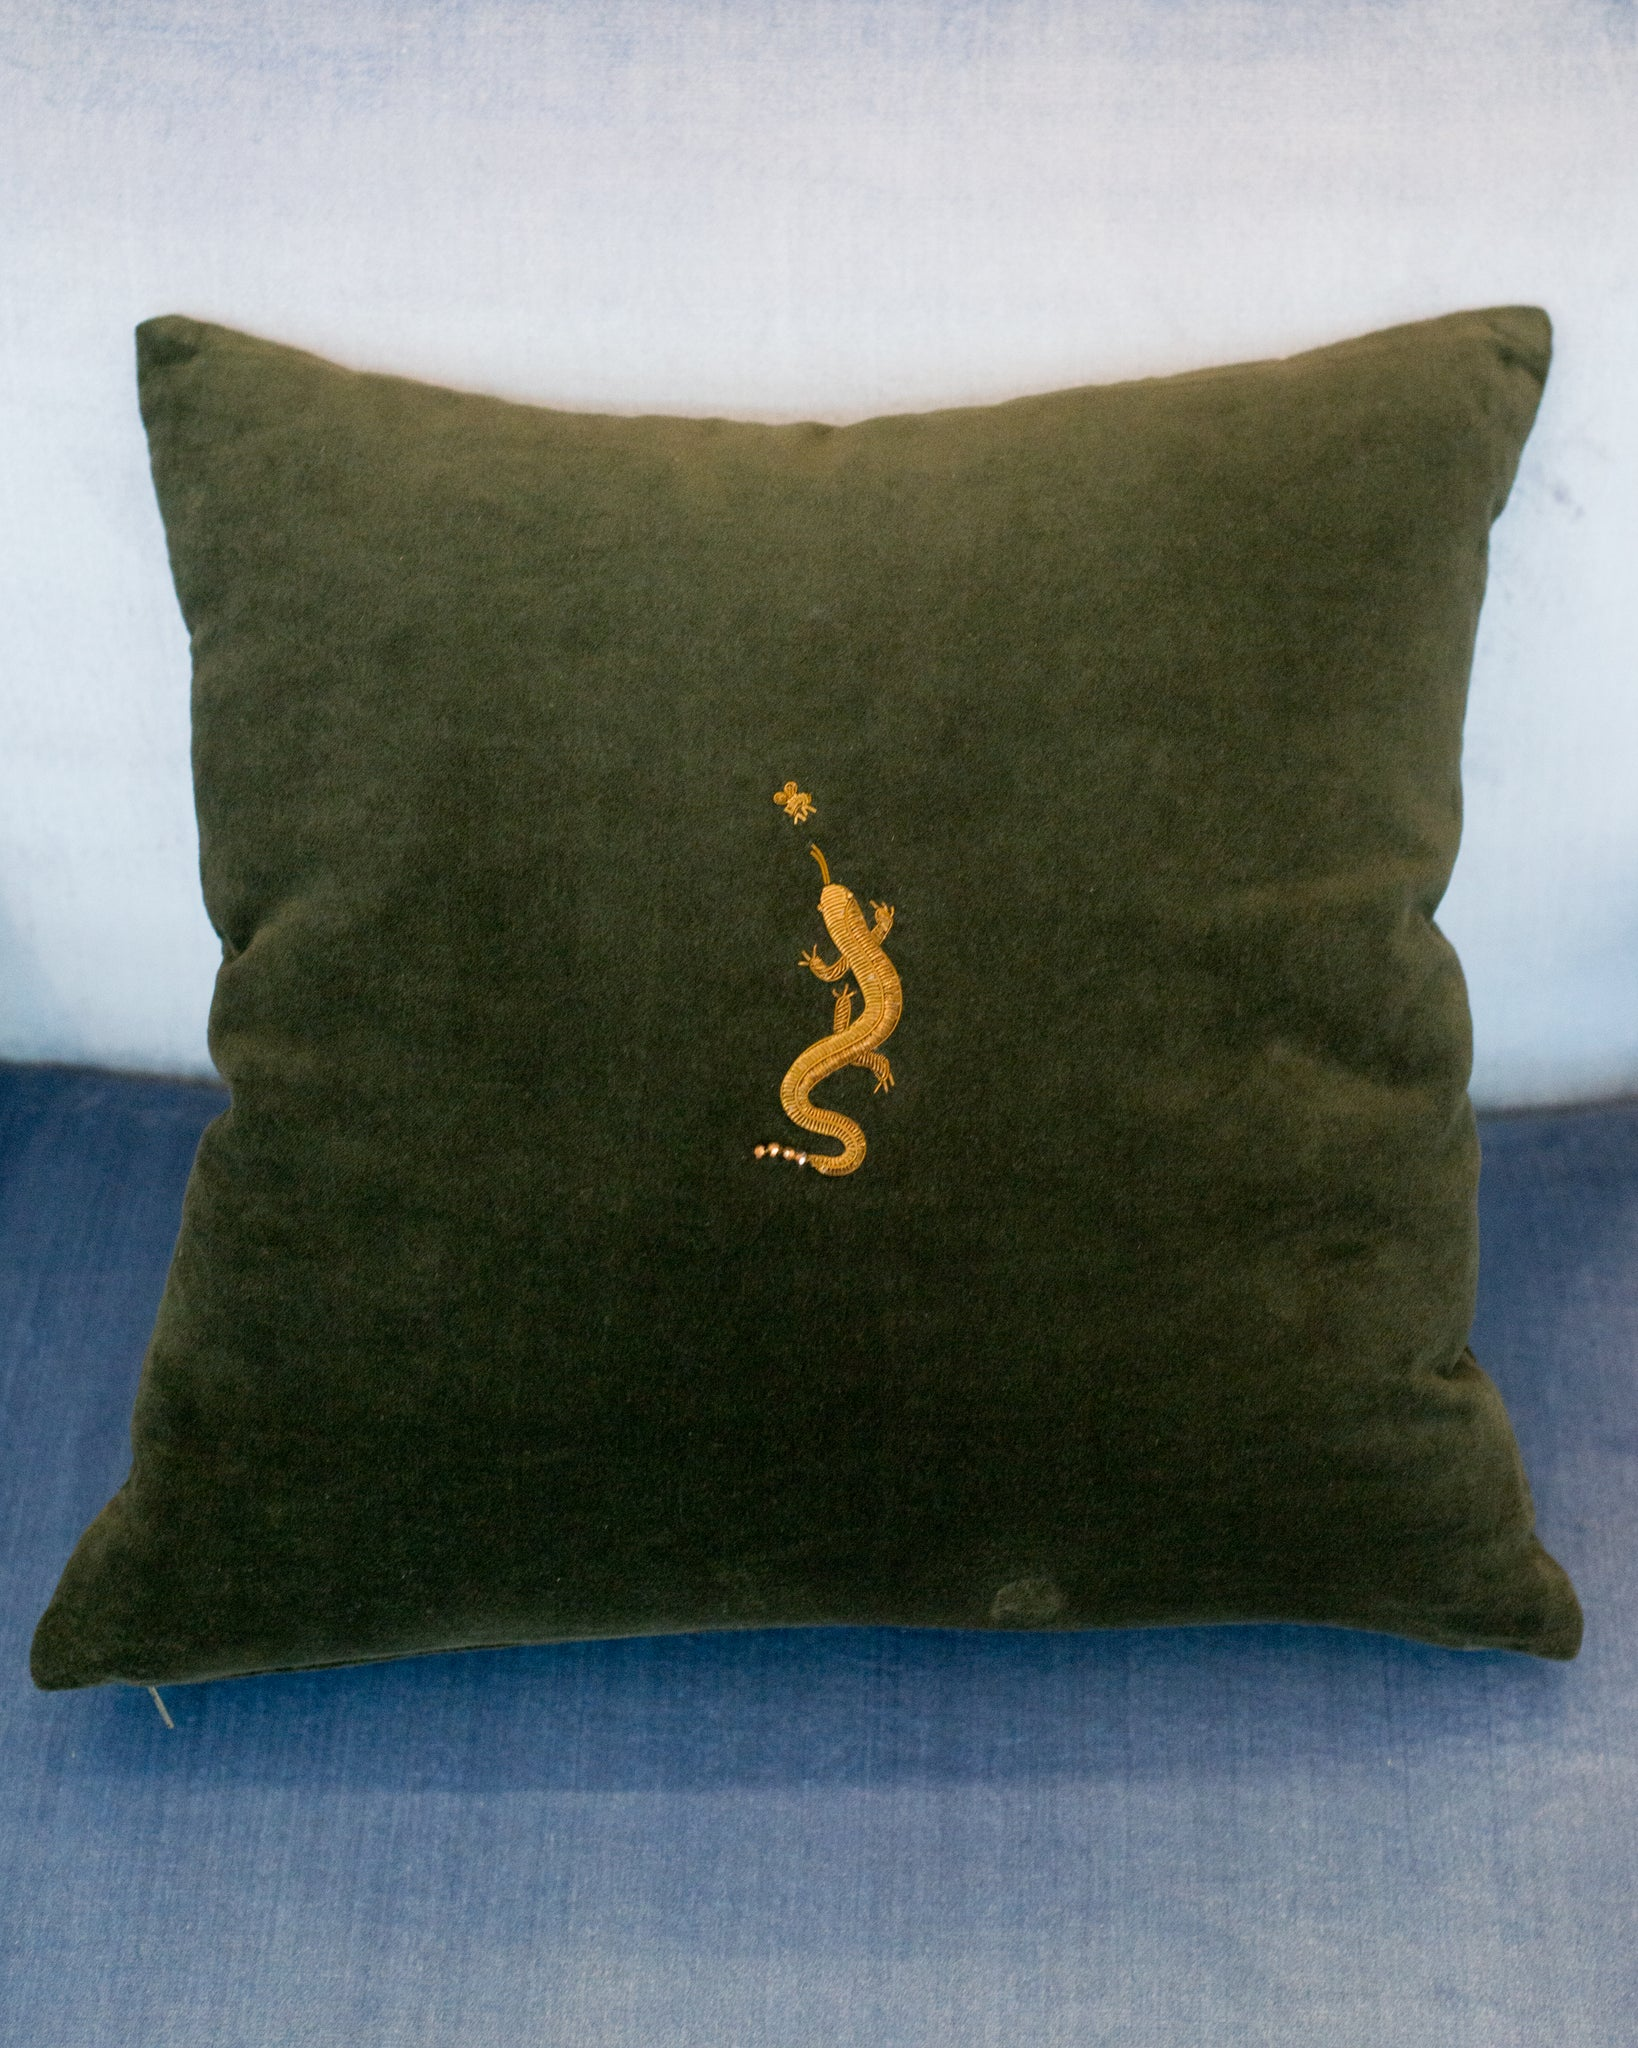 COTTON VELVET  PILLOW WITH GOLD METALLIC EMBROIDERED SALAMANDER